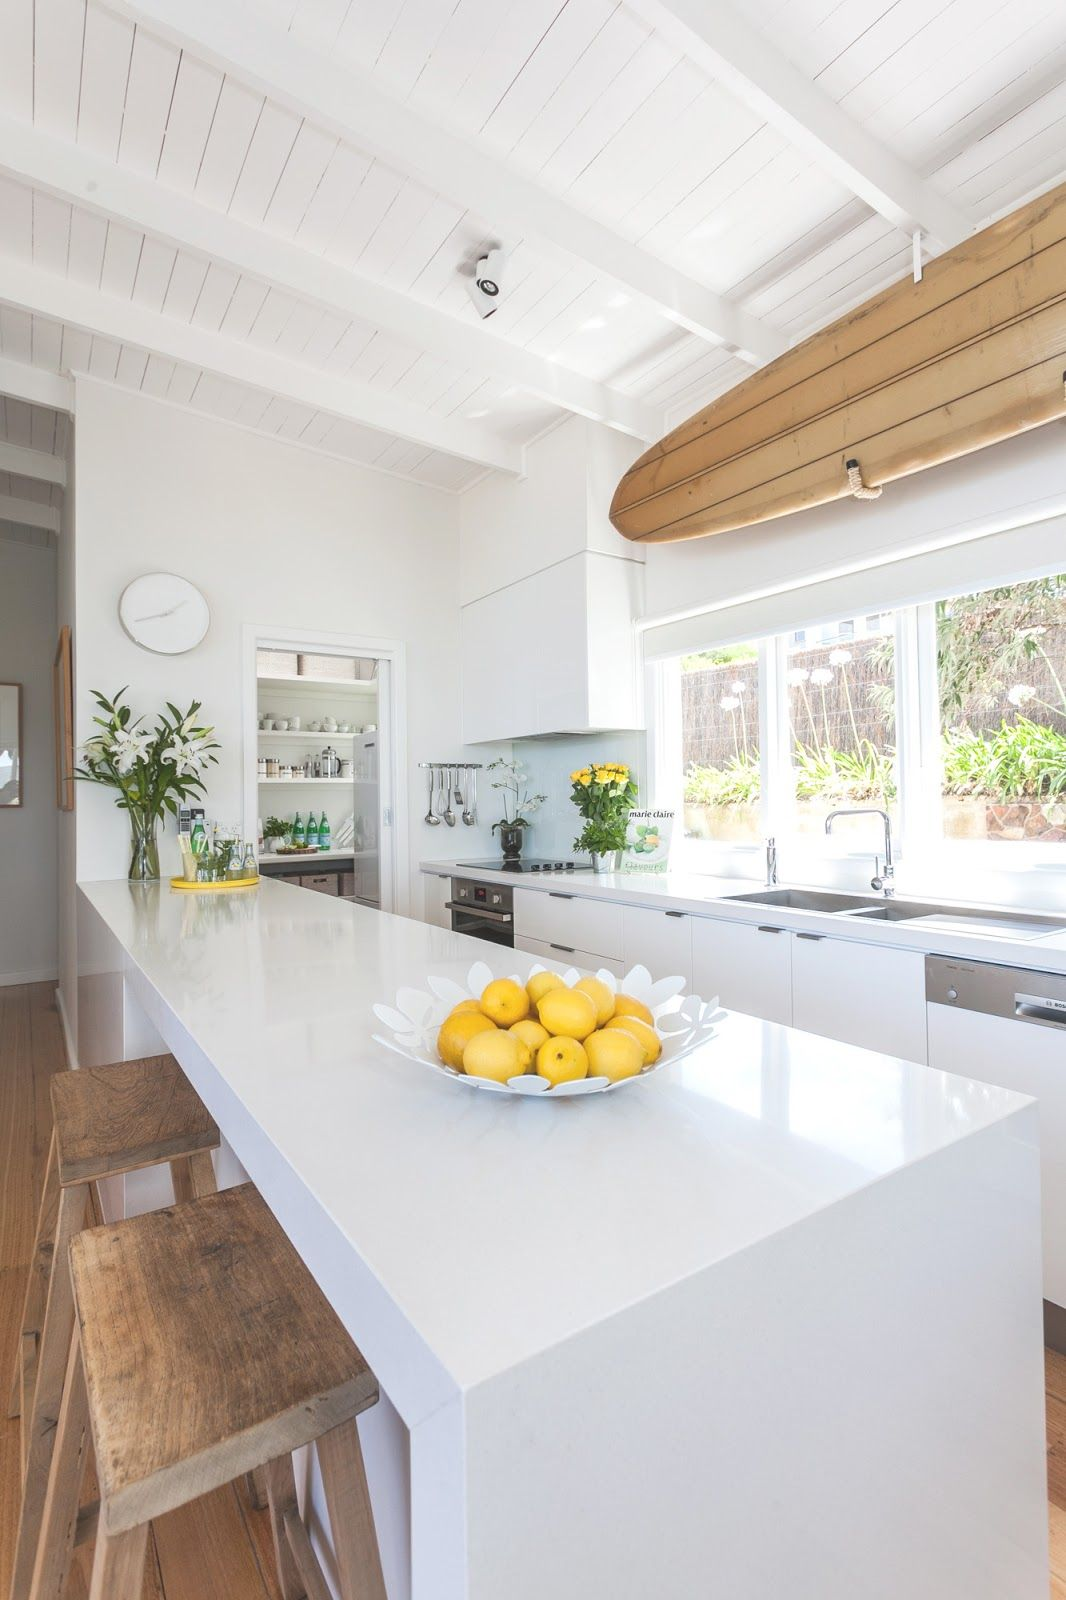 My Kitchen With A Pop Of Yellow Beach House Kitchens Home Kitchens Kitchen Inspirations